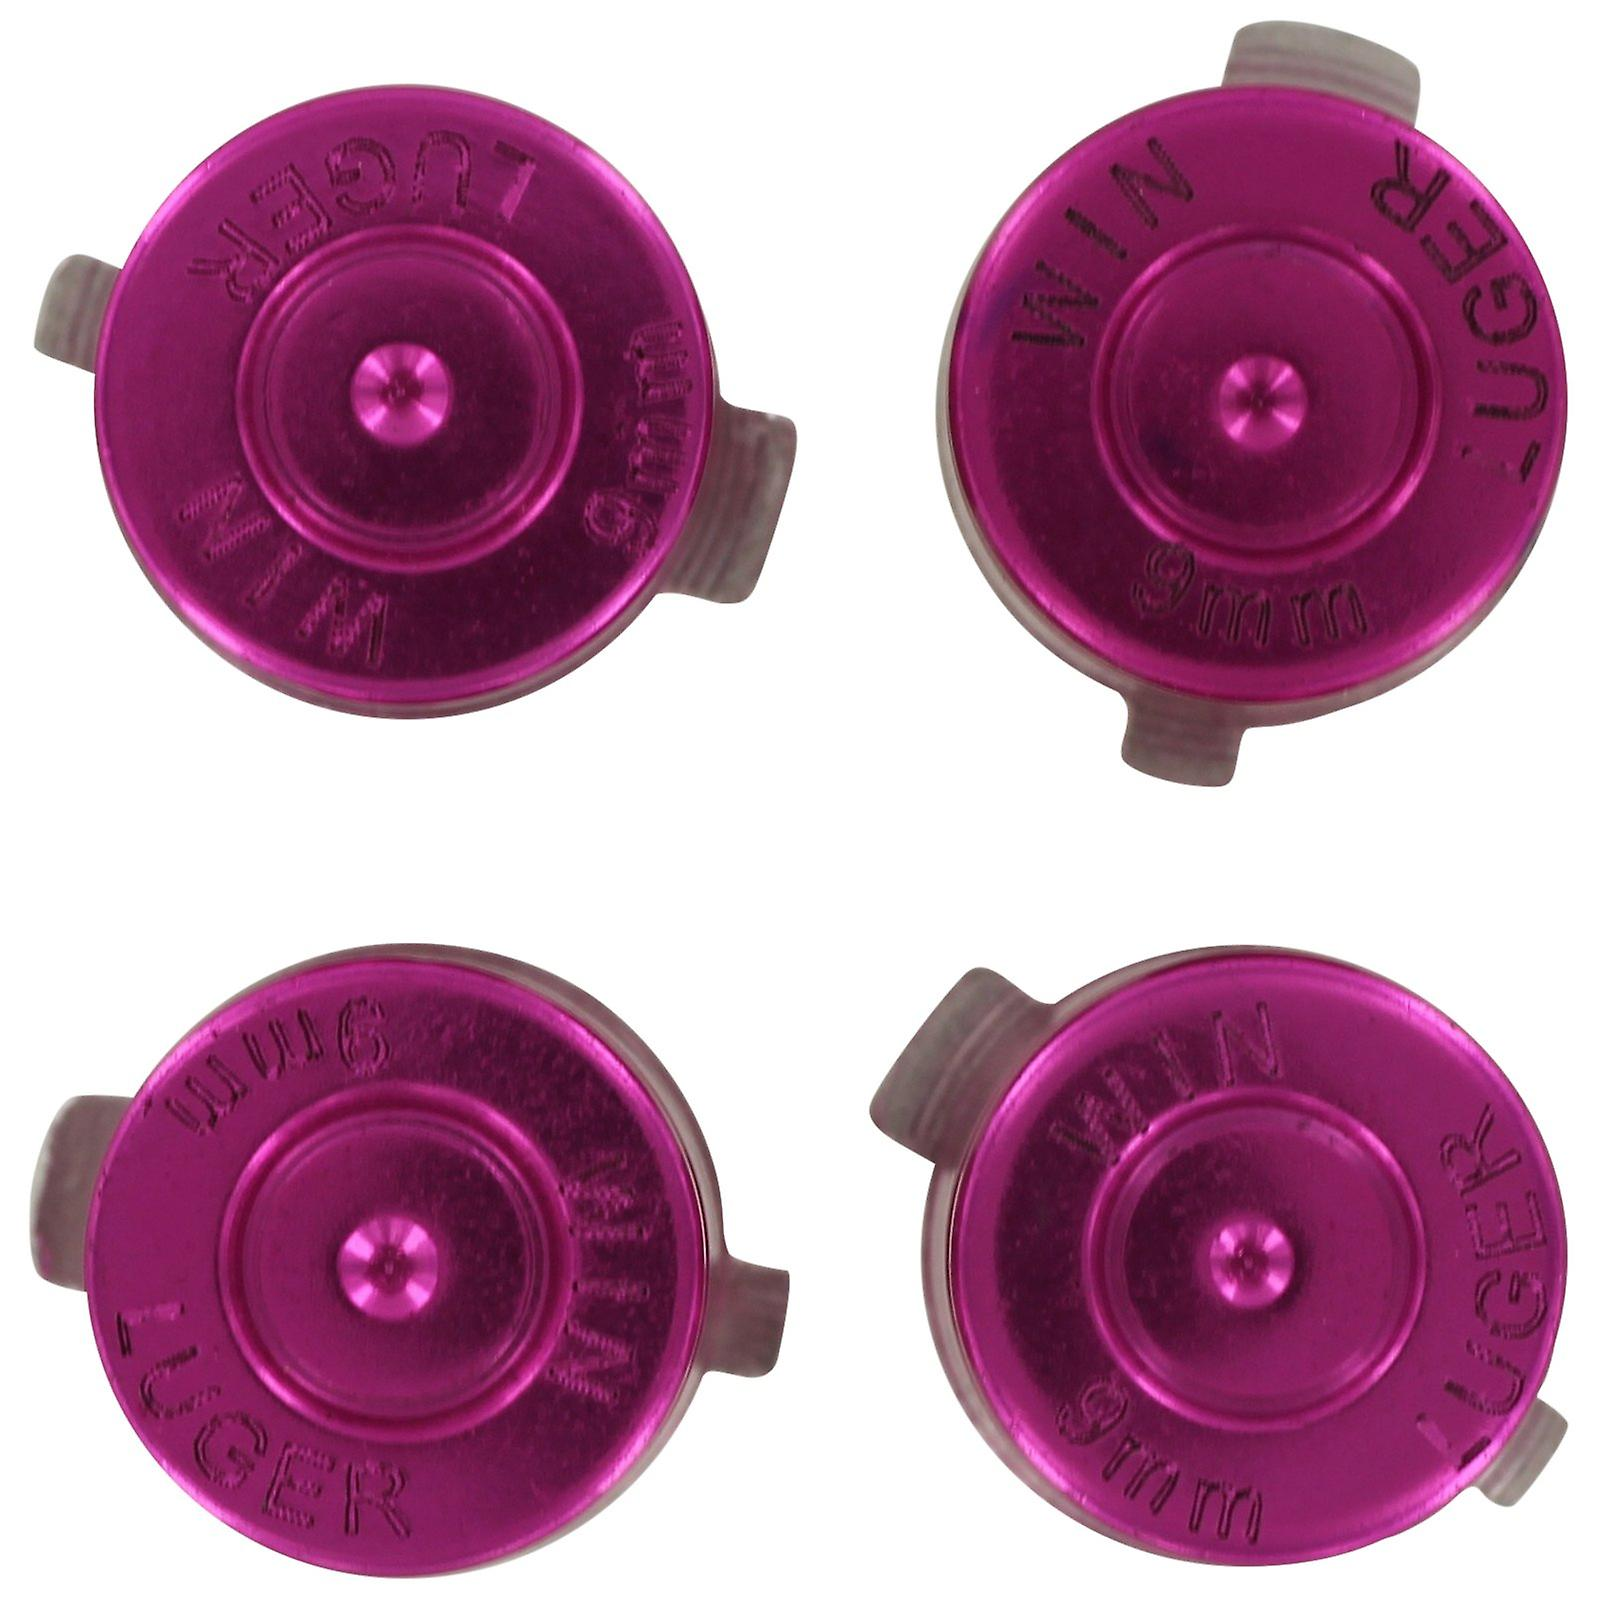 Aluminium metal action bullet button set for sony ps4 controllers - pink